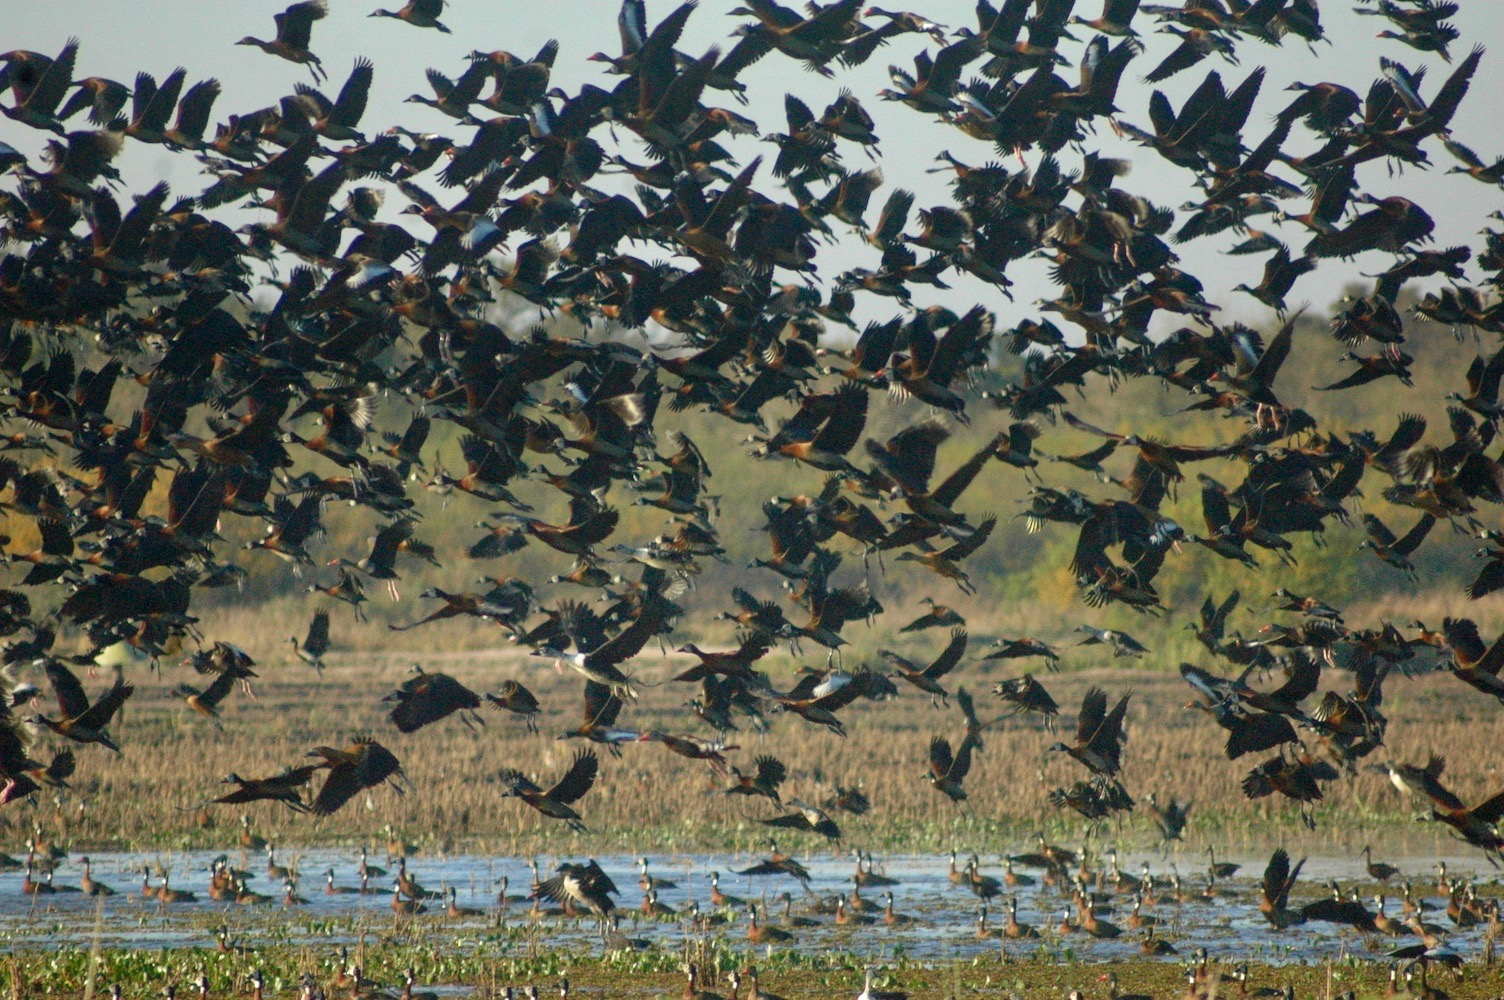 waterfowl fly over Argentina wetland